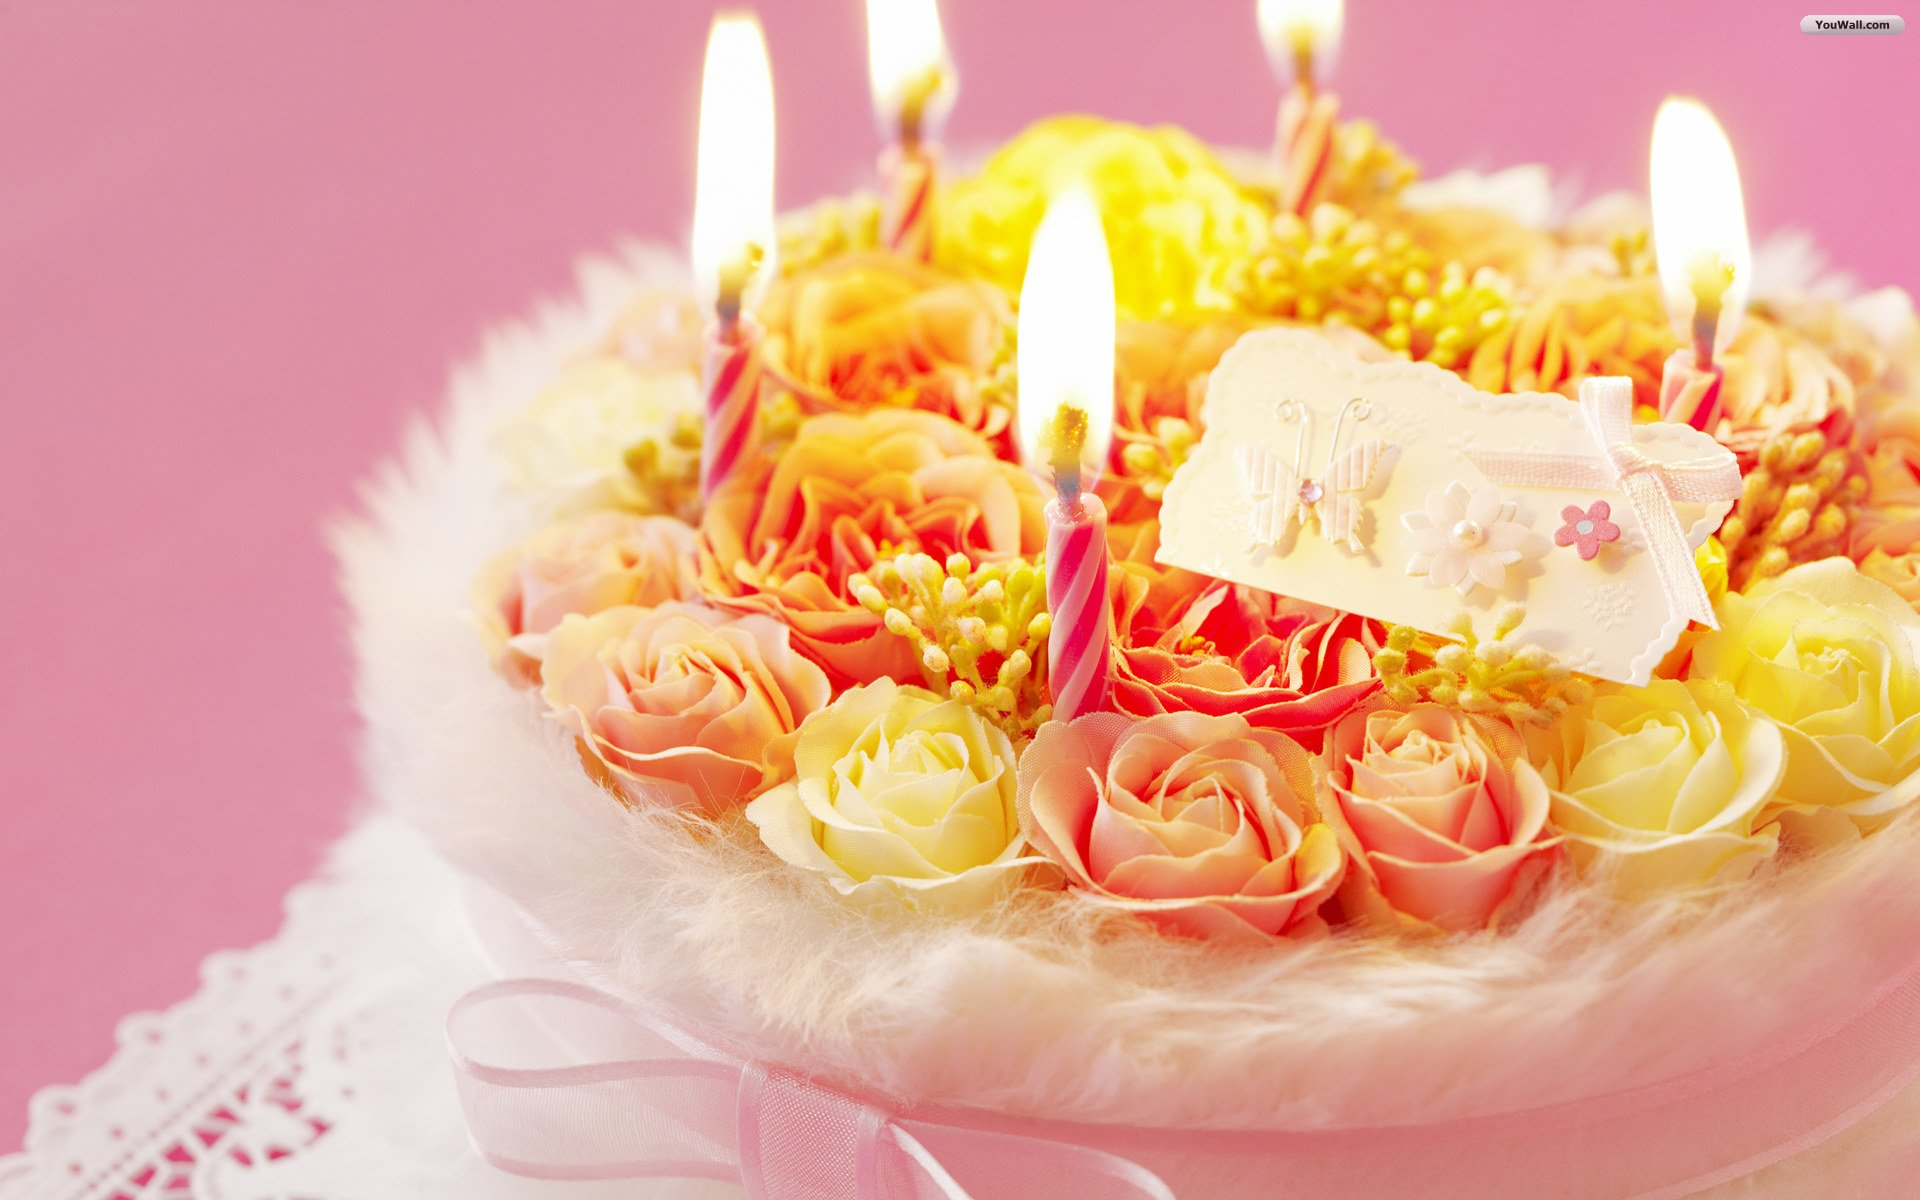 Hilarious Birthday Wishes That Can Make Your Friends Laugh on Their Birthday 3